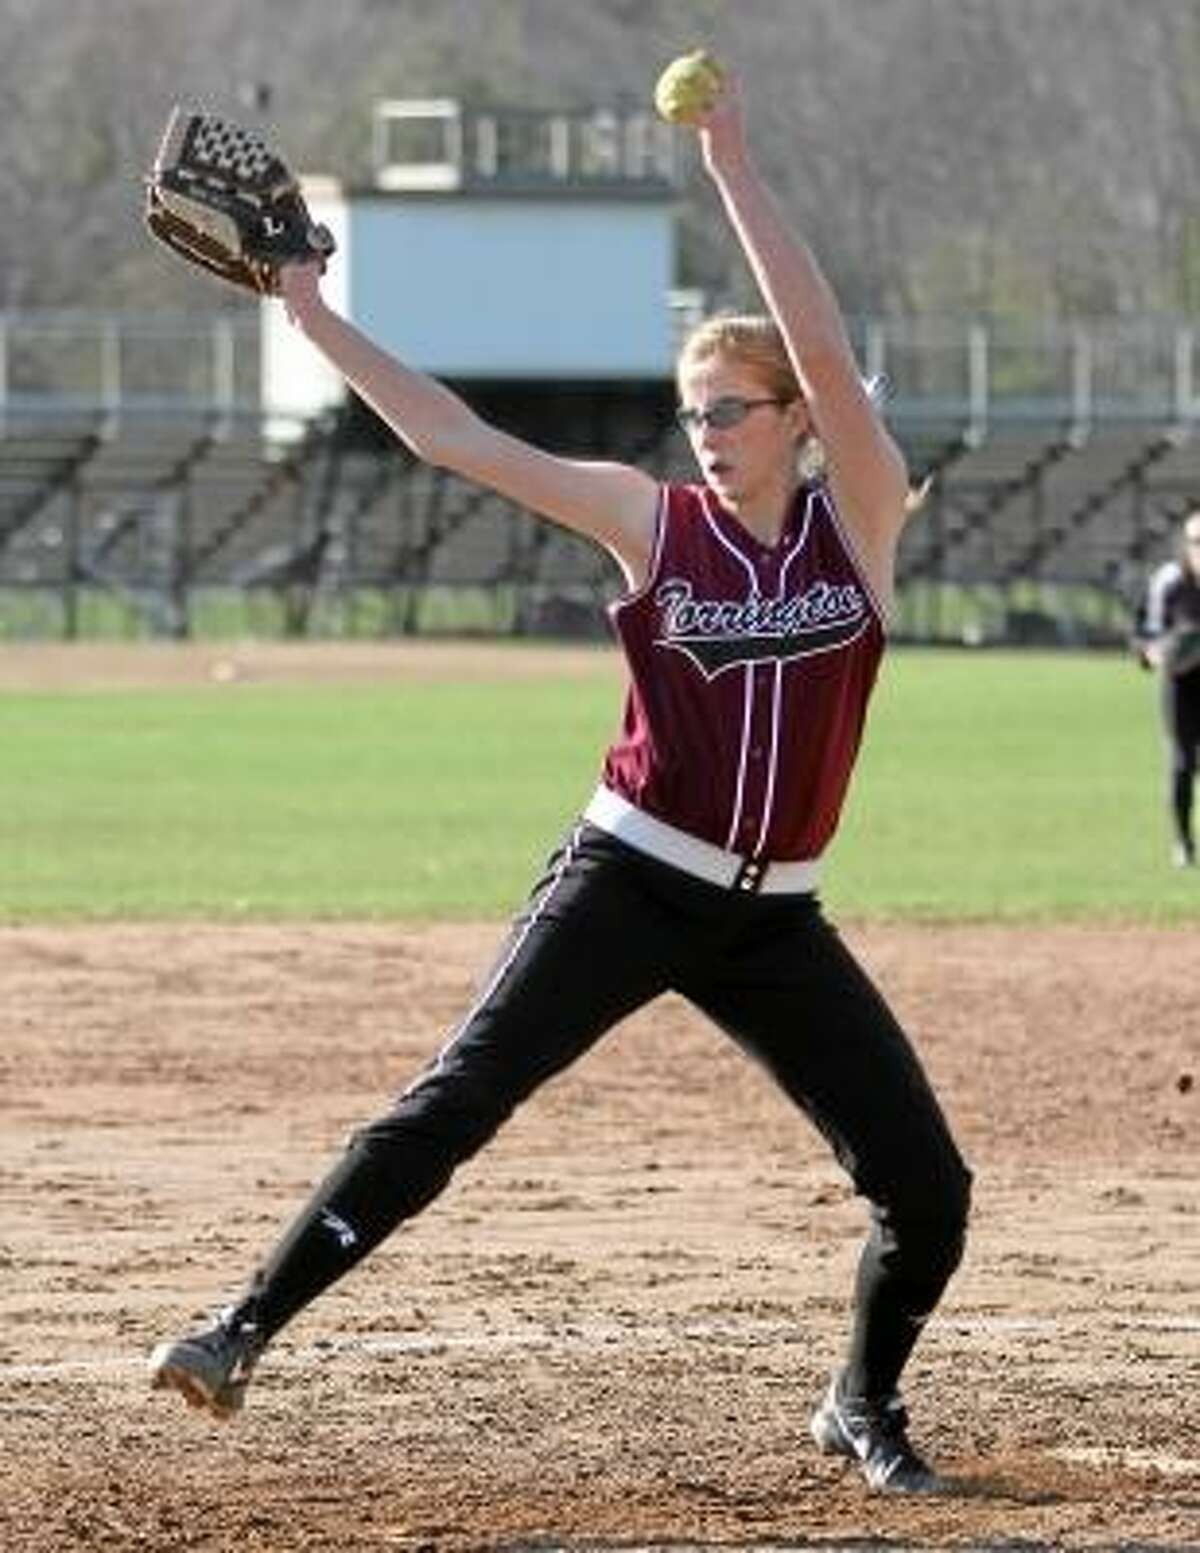 Photo by Marianne Killackey/Special to Register Citizen Torrington's Sydney Matzko pitches in a game earlier this season.